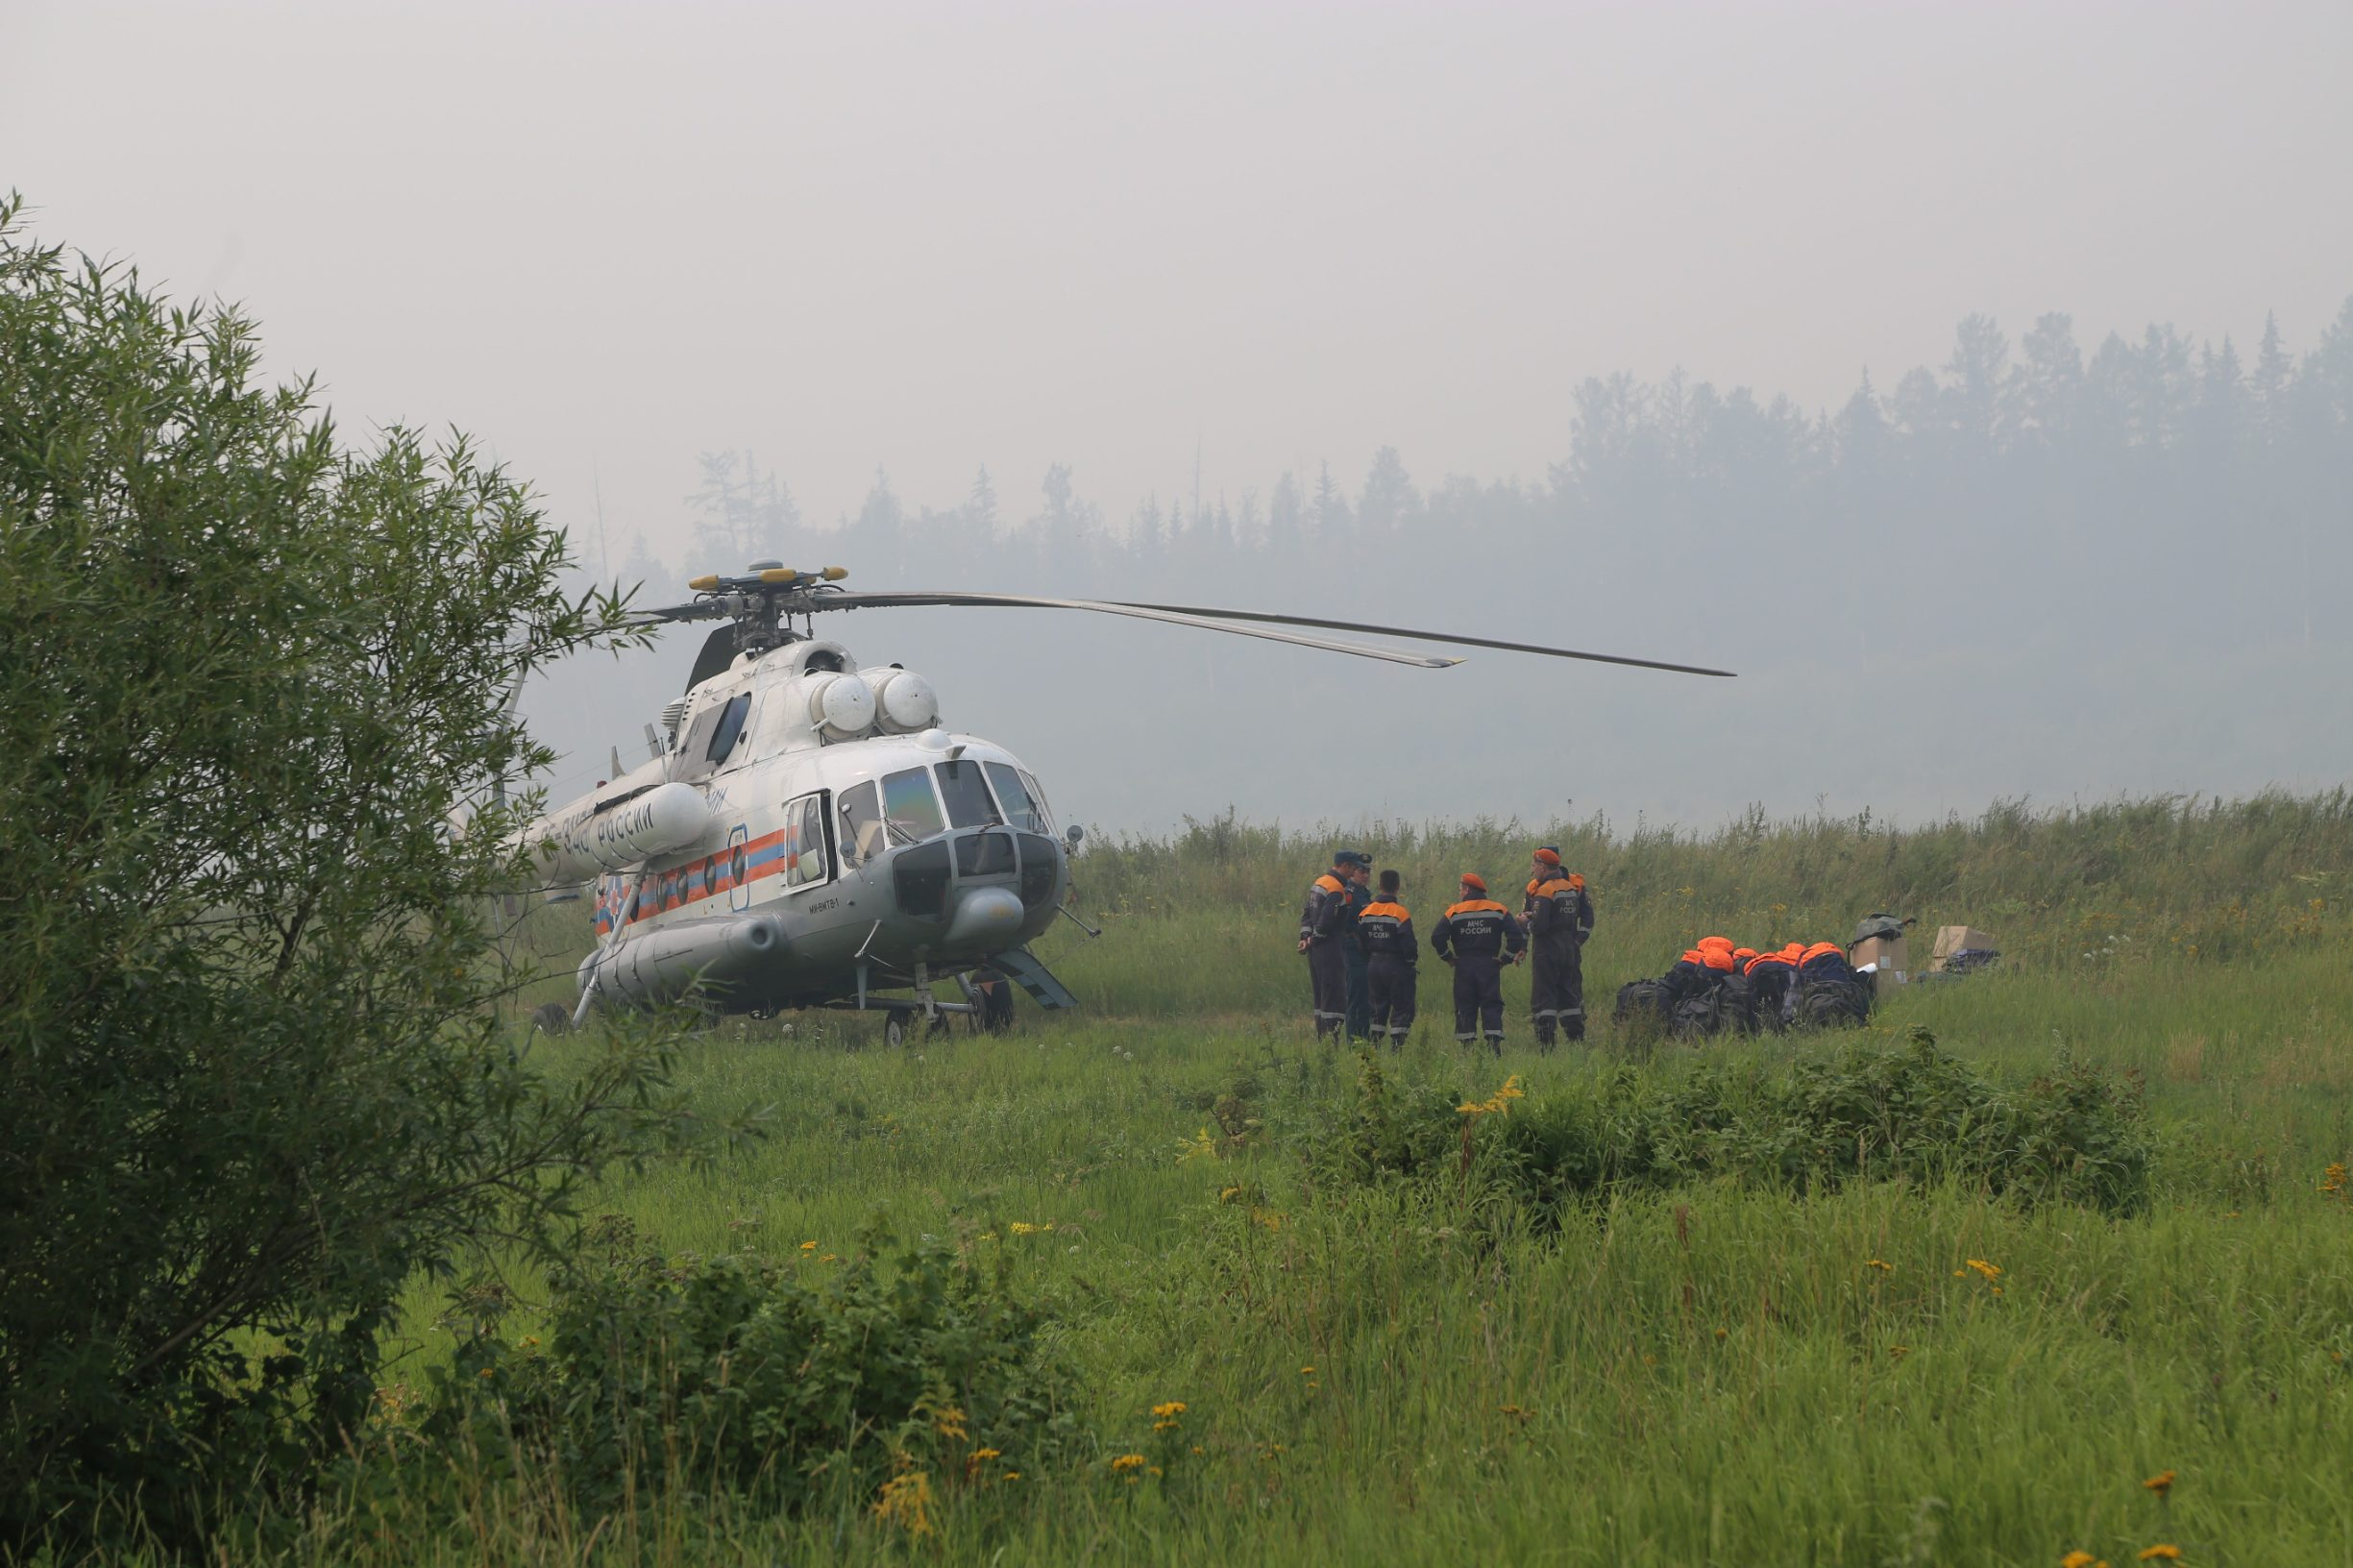 Members of the Russian Emergencies Ministry stand next to a helicopter near the site of a wildfire in Krasnoyarsk region, Russiain this handout picture obtained by Reuters on August 1, 2019. Russian Emergencies Ministry in Krasnoyarsk region/Handout via REUTERS ATTENTION EDITORS - THIS IMAGE WAS PROVIDED BY A THIRD PARTY. NO RESALES. NO ARCHIVES. MANDATORY CREDIT.